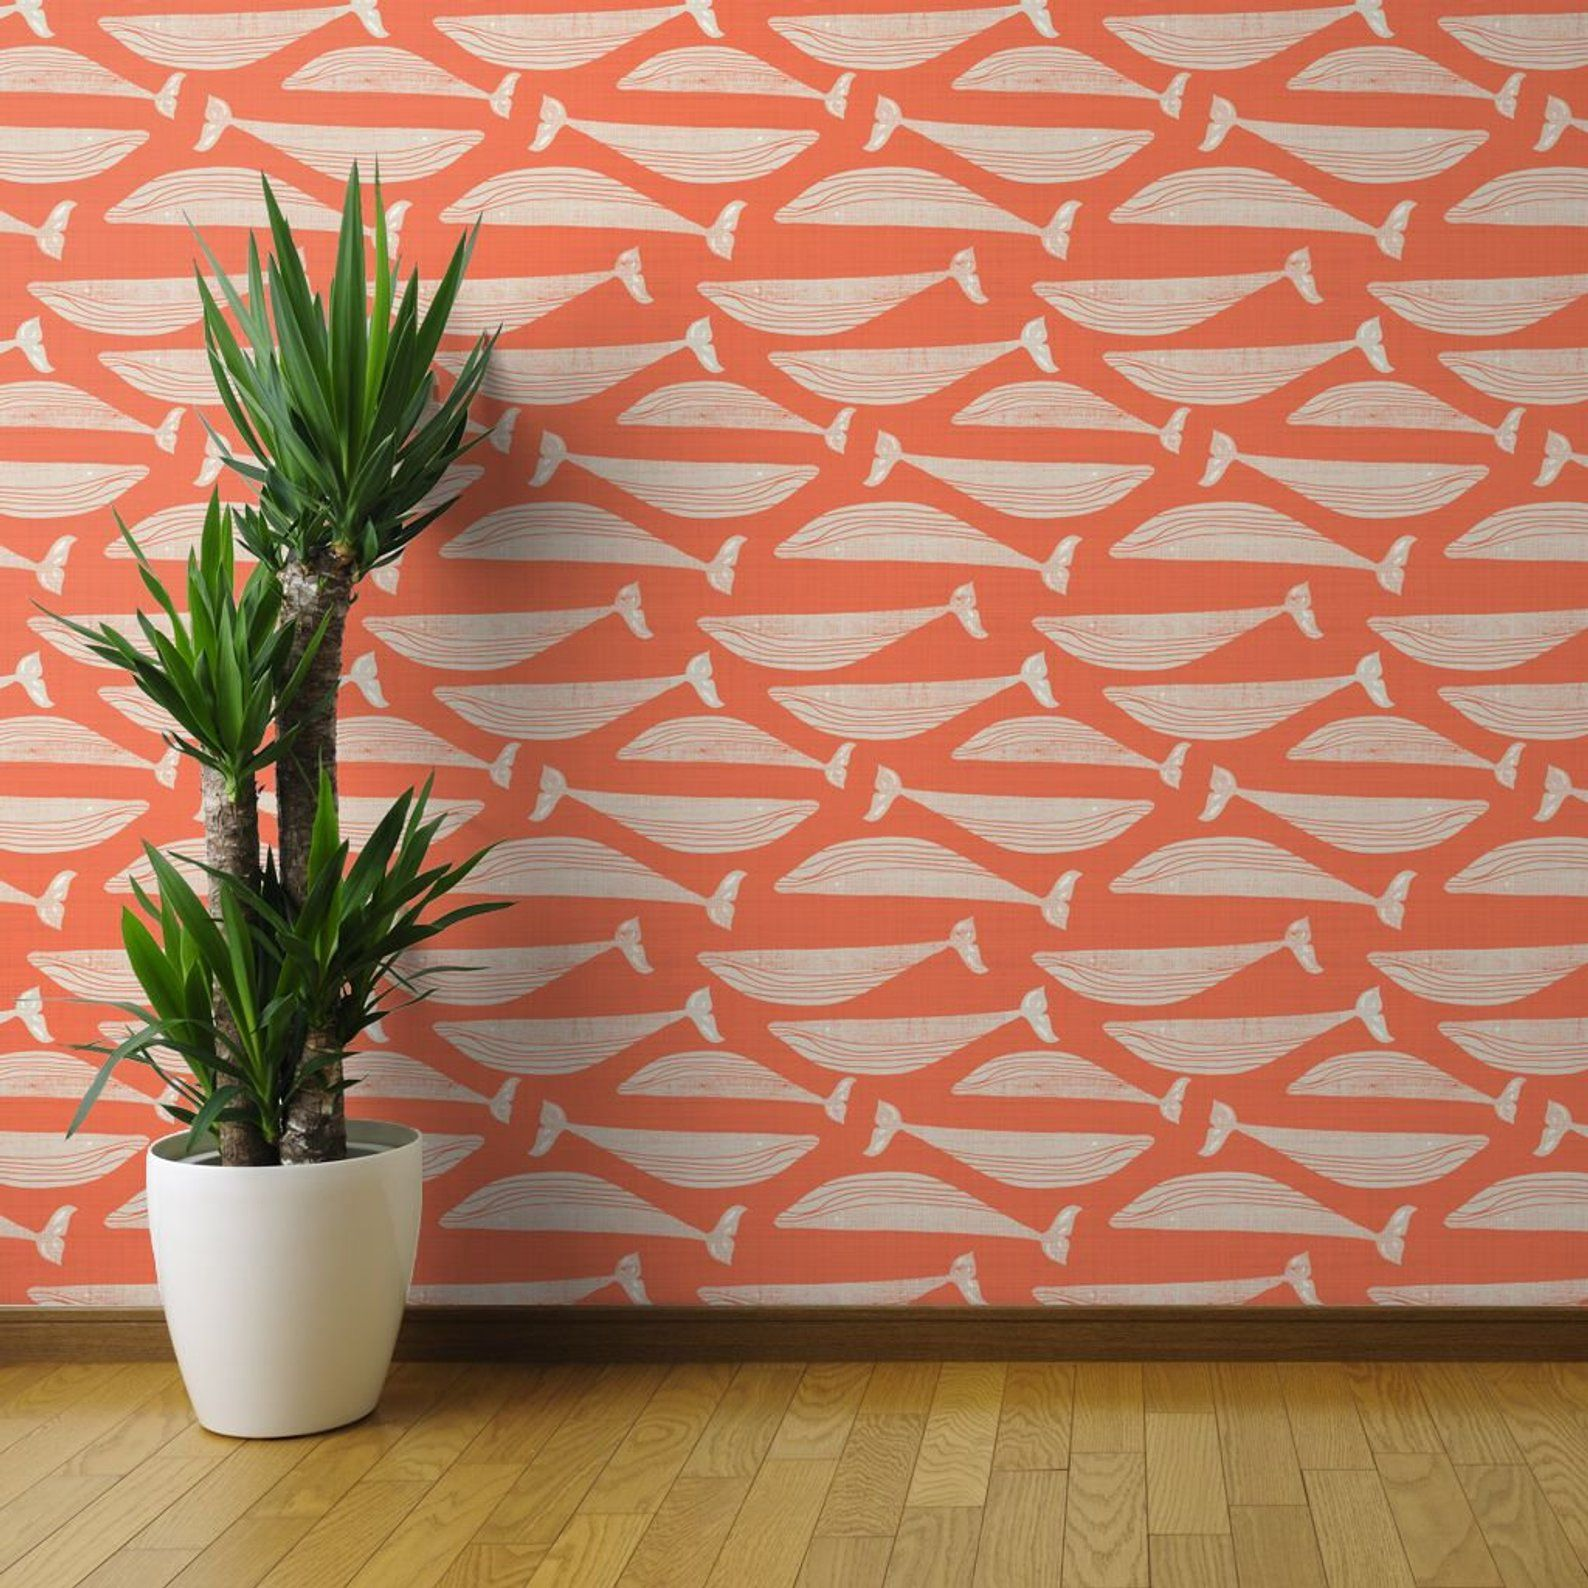 Whales Wallpaper Whales On Orange By Gemmacosgroveball Etsy Peel And Stick Wallpaper Wallpaper Roll Whale Nursery Decor